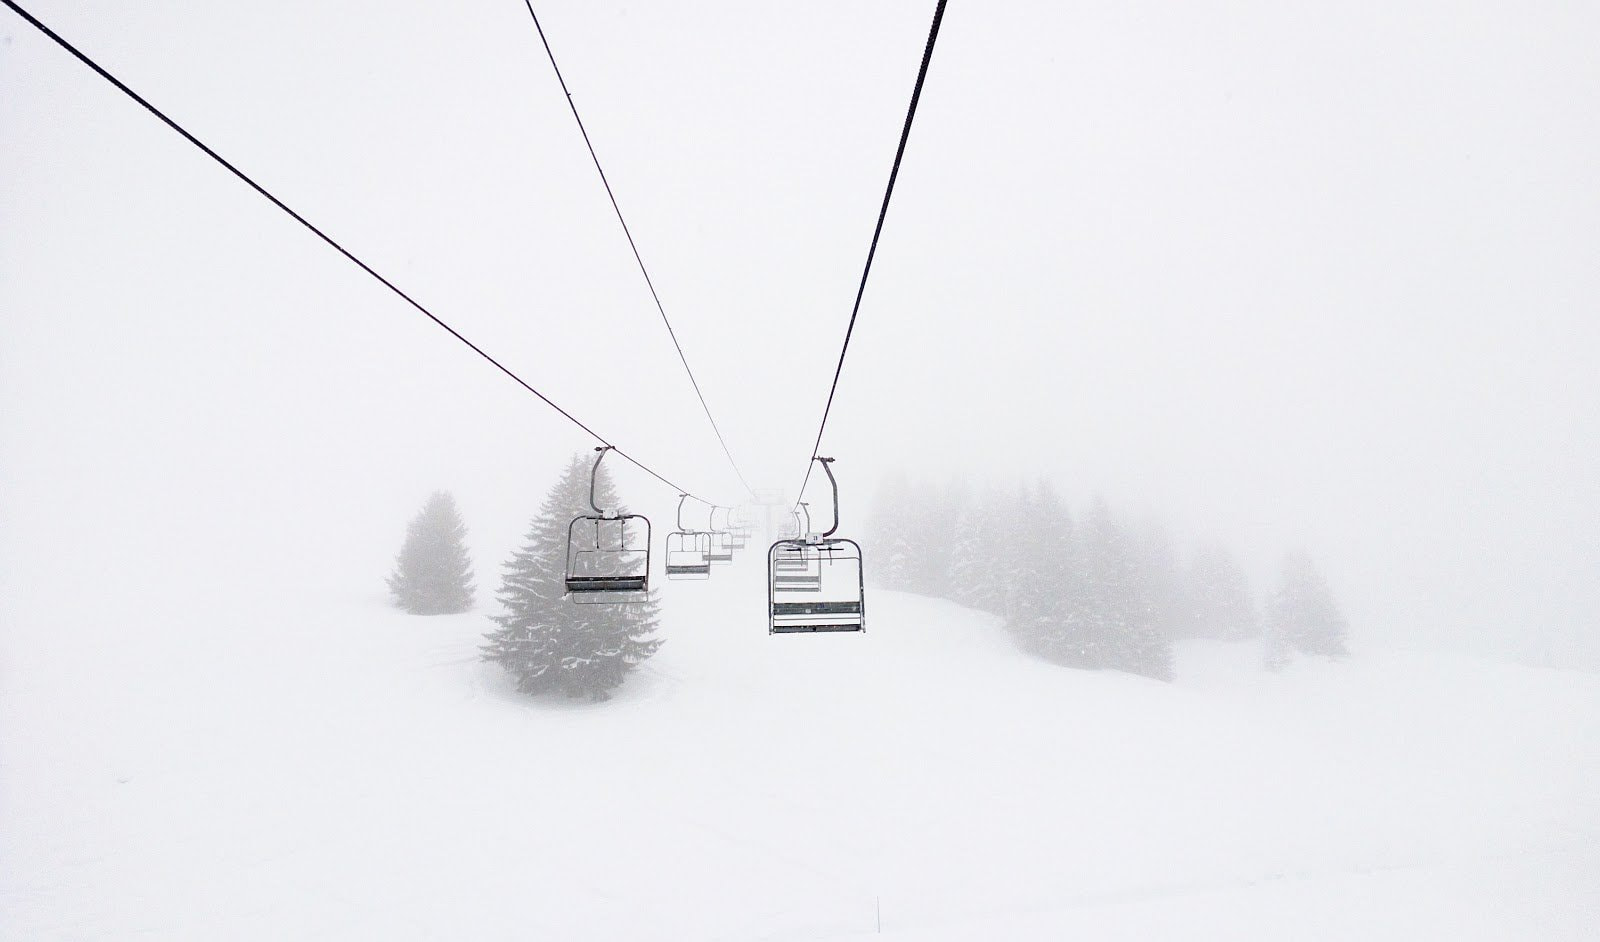 Chair lifts on a foggy ski slope by Geoffrey Arduini